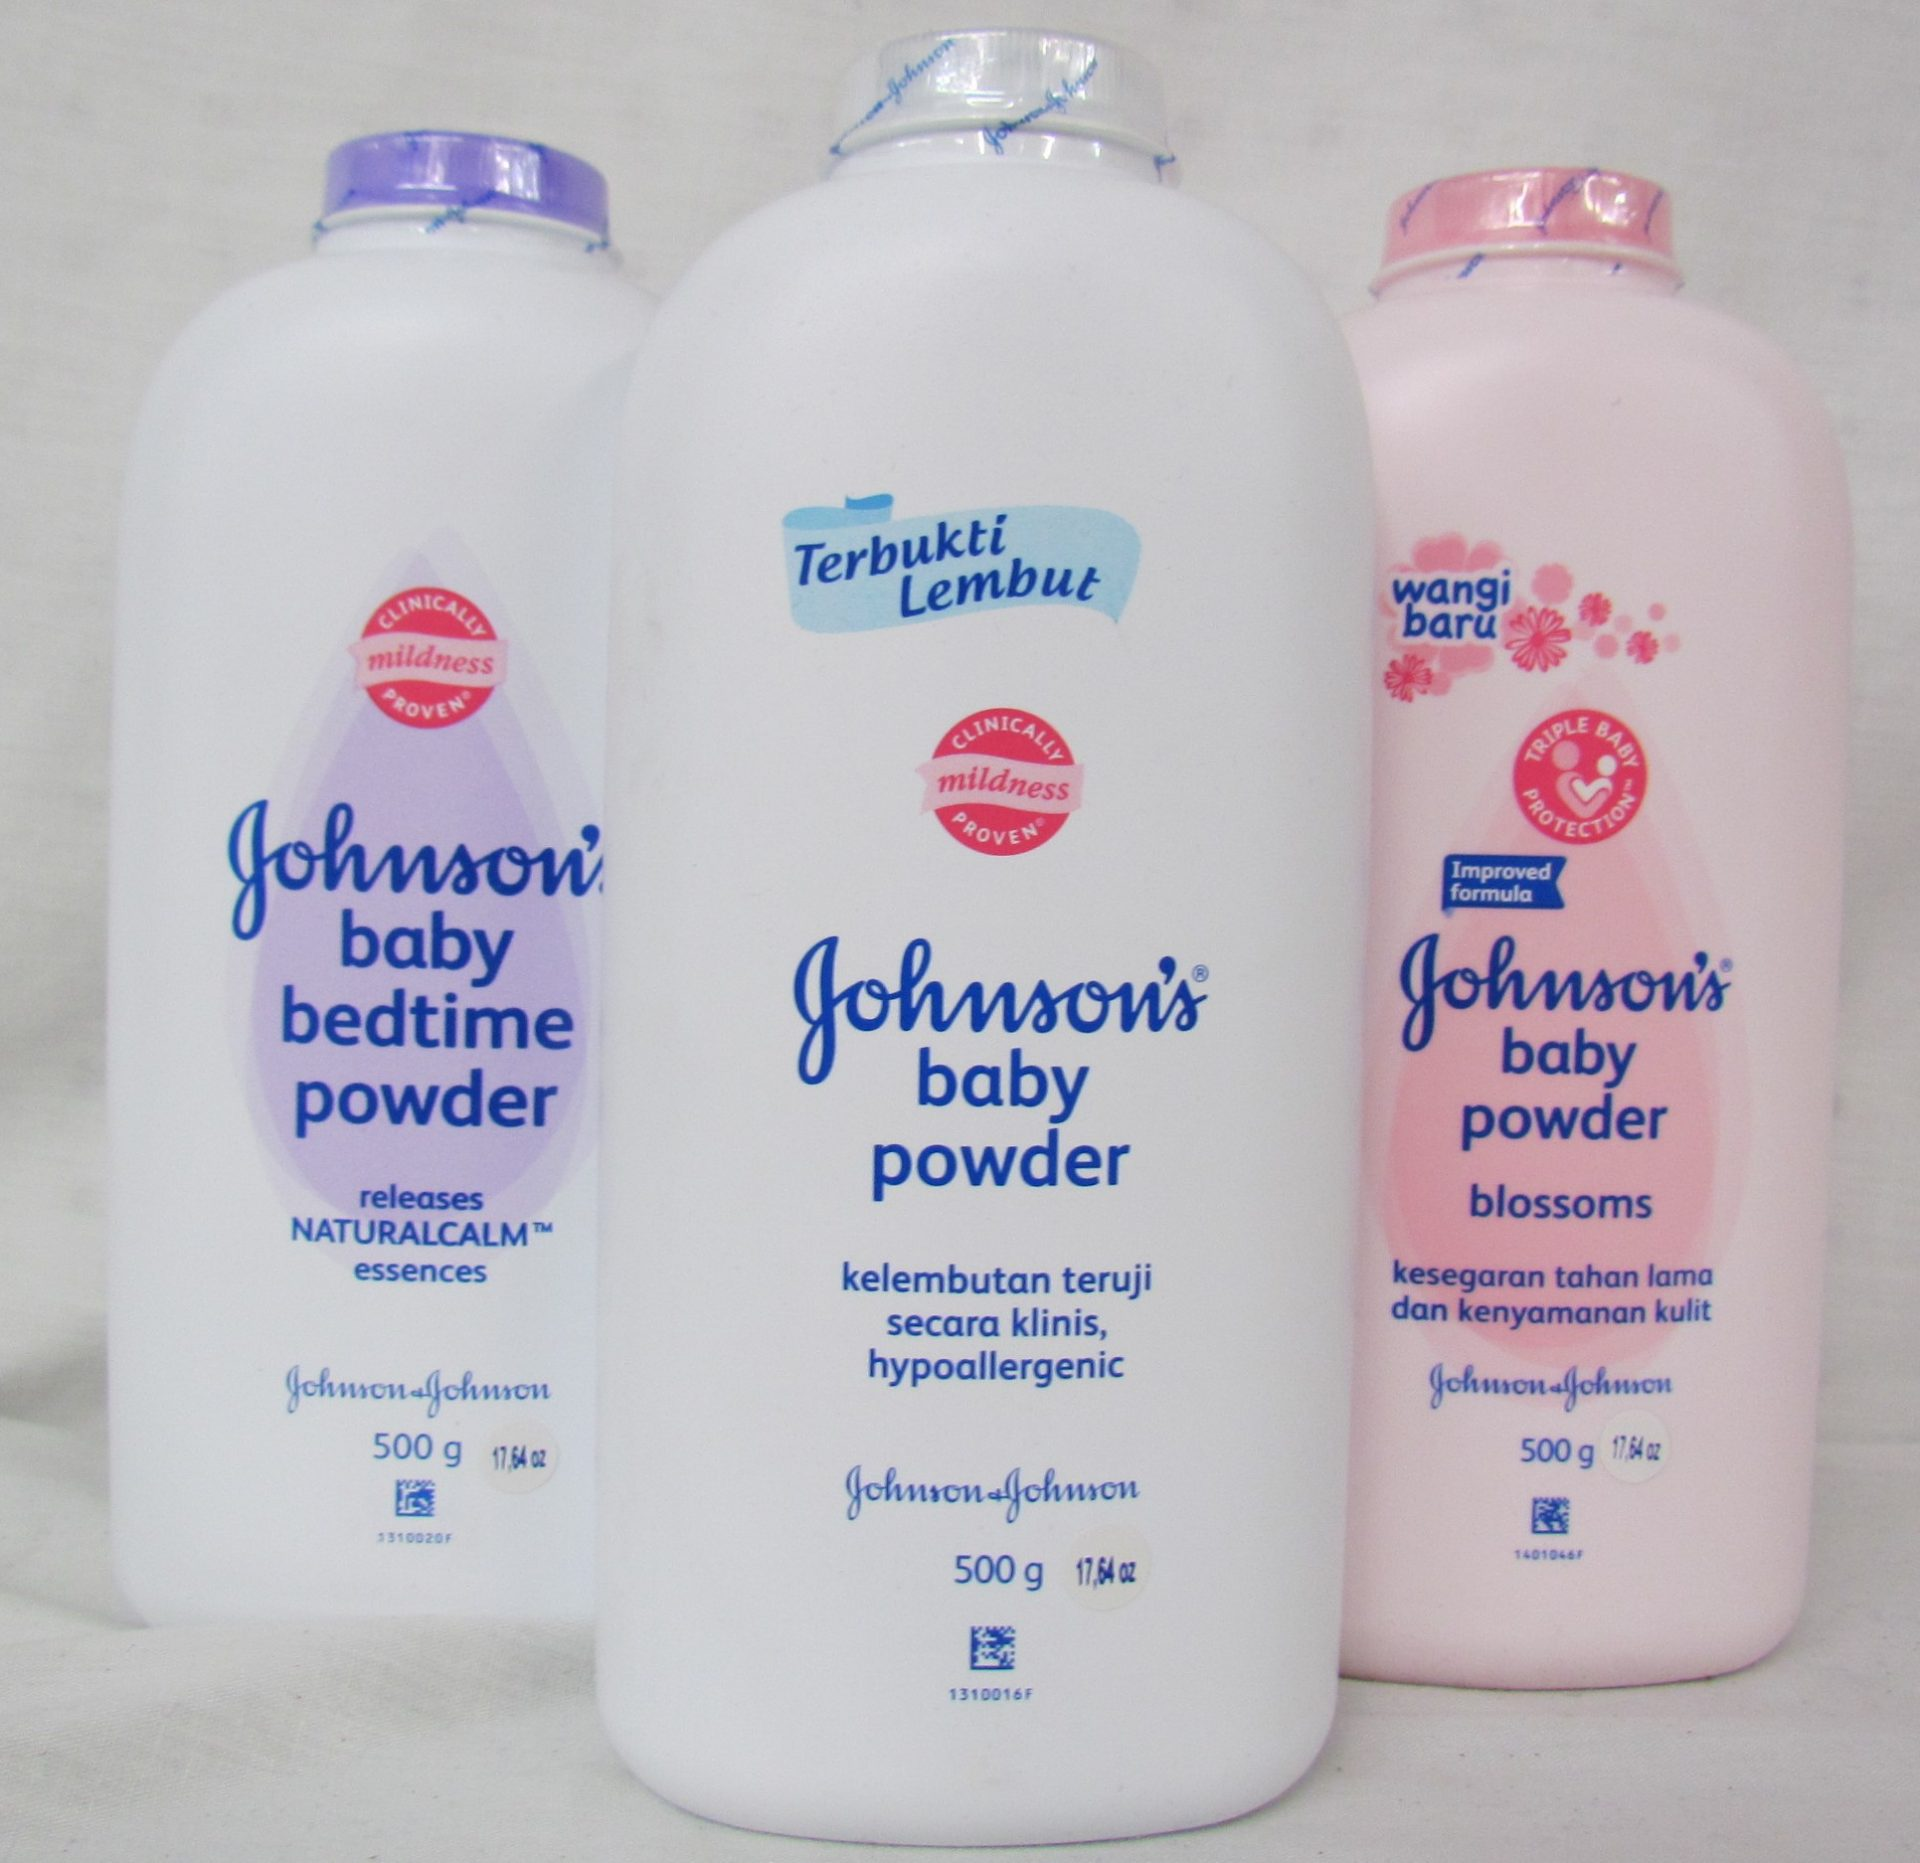 Point Guard Marketing Product Categories Baby Care Johnsons Blossoms Soap 100gr 500g Blossom Powder